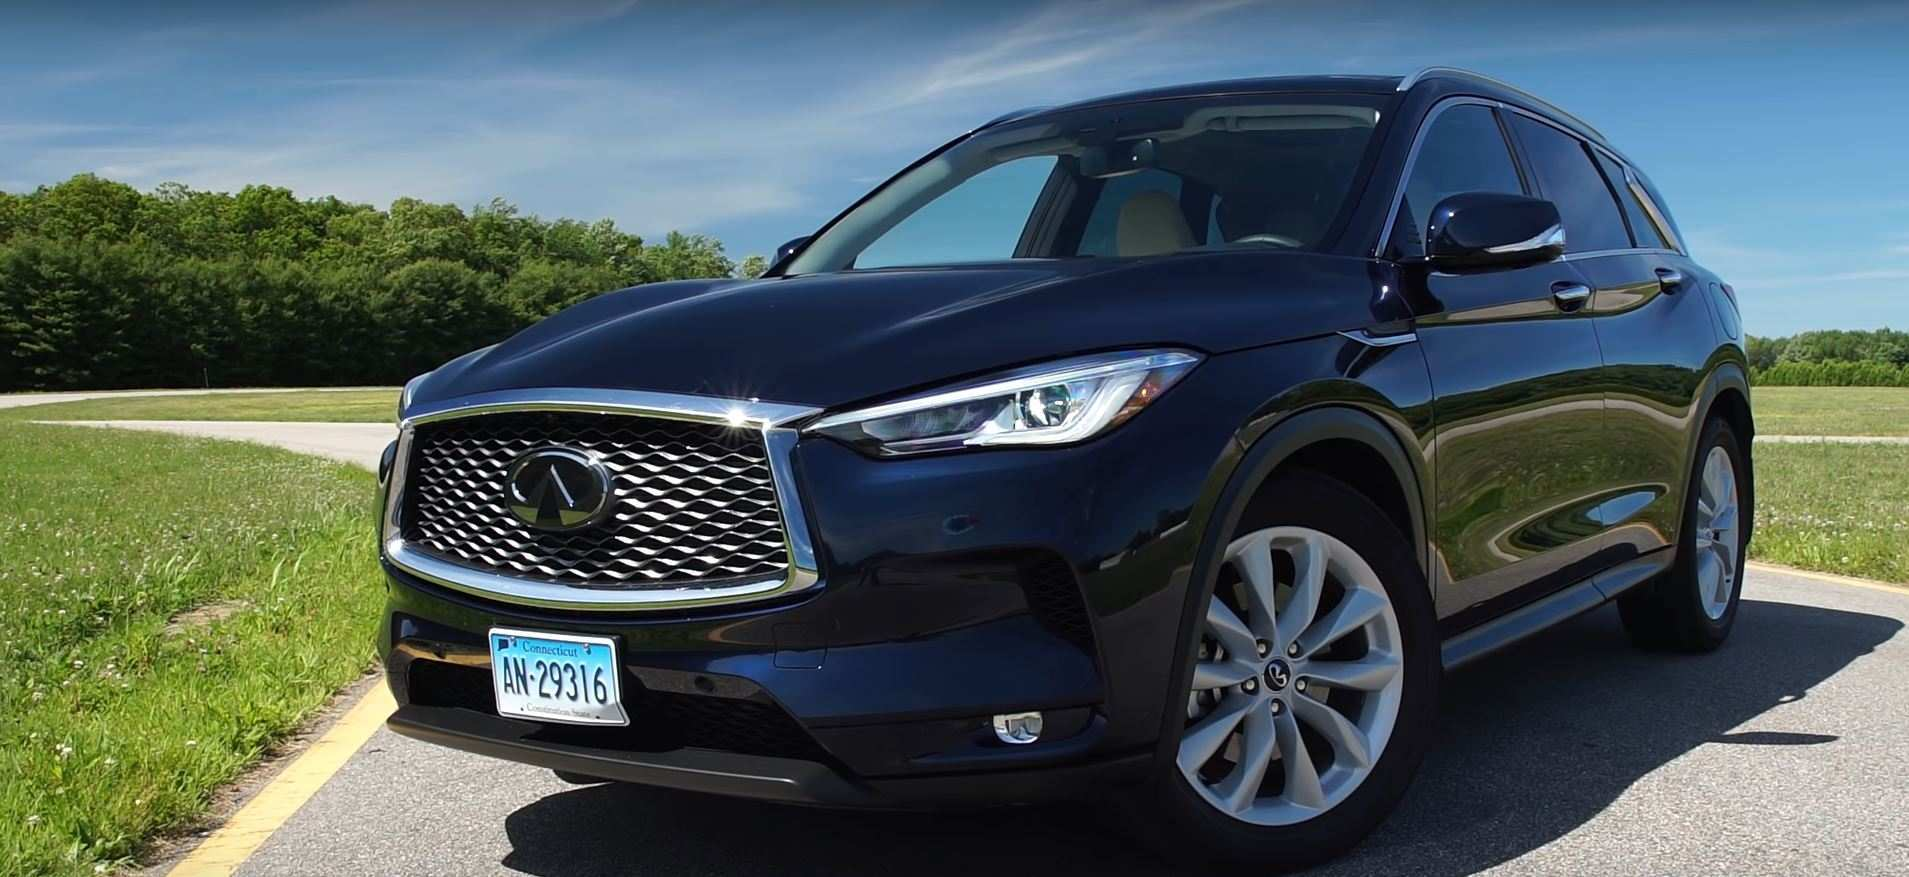 26 Best Review 2019 Infiniti Qx50 Edmunds Picture by 2019 Infiniti Qx50 Edmunds